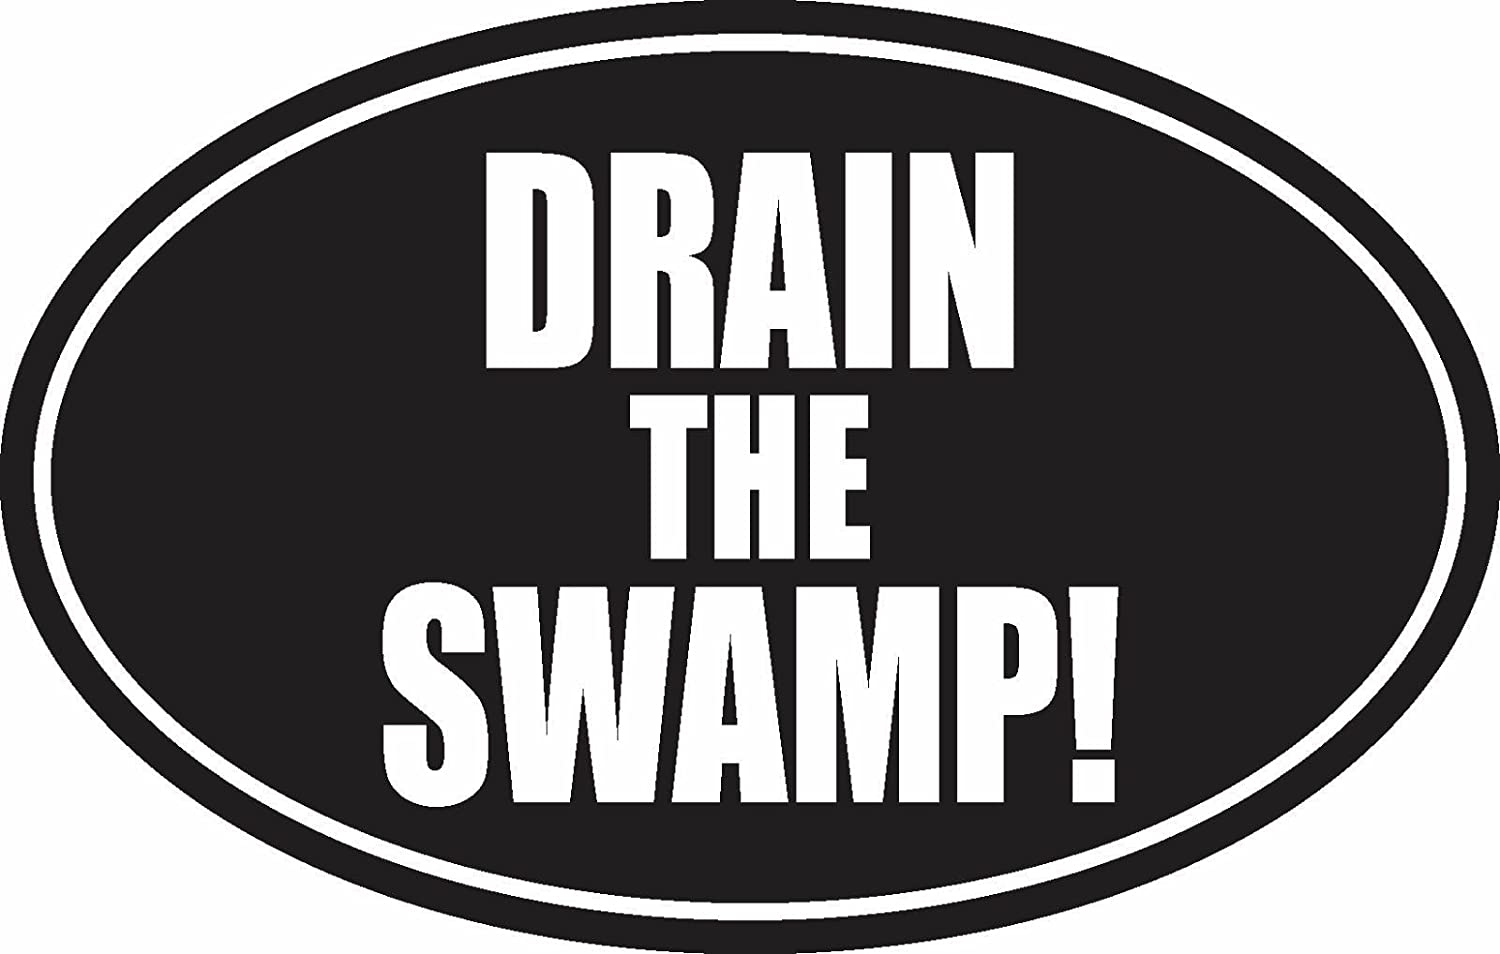 Drain the Swamp Decal for cars trucks vehicle windows bumpers trailer garage etc